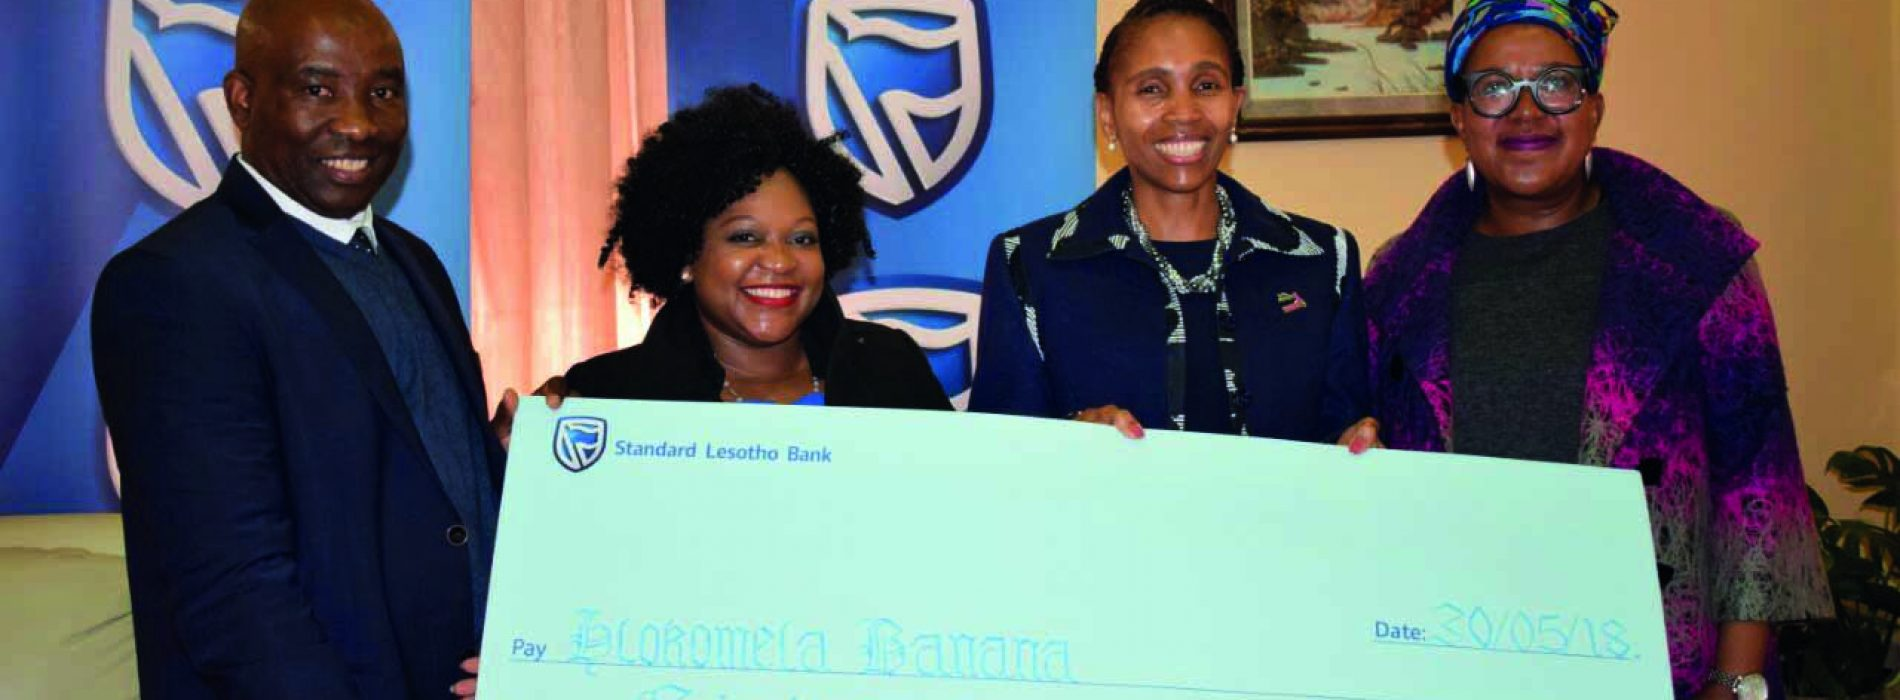 'Blue bank' touches lives